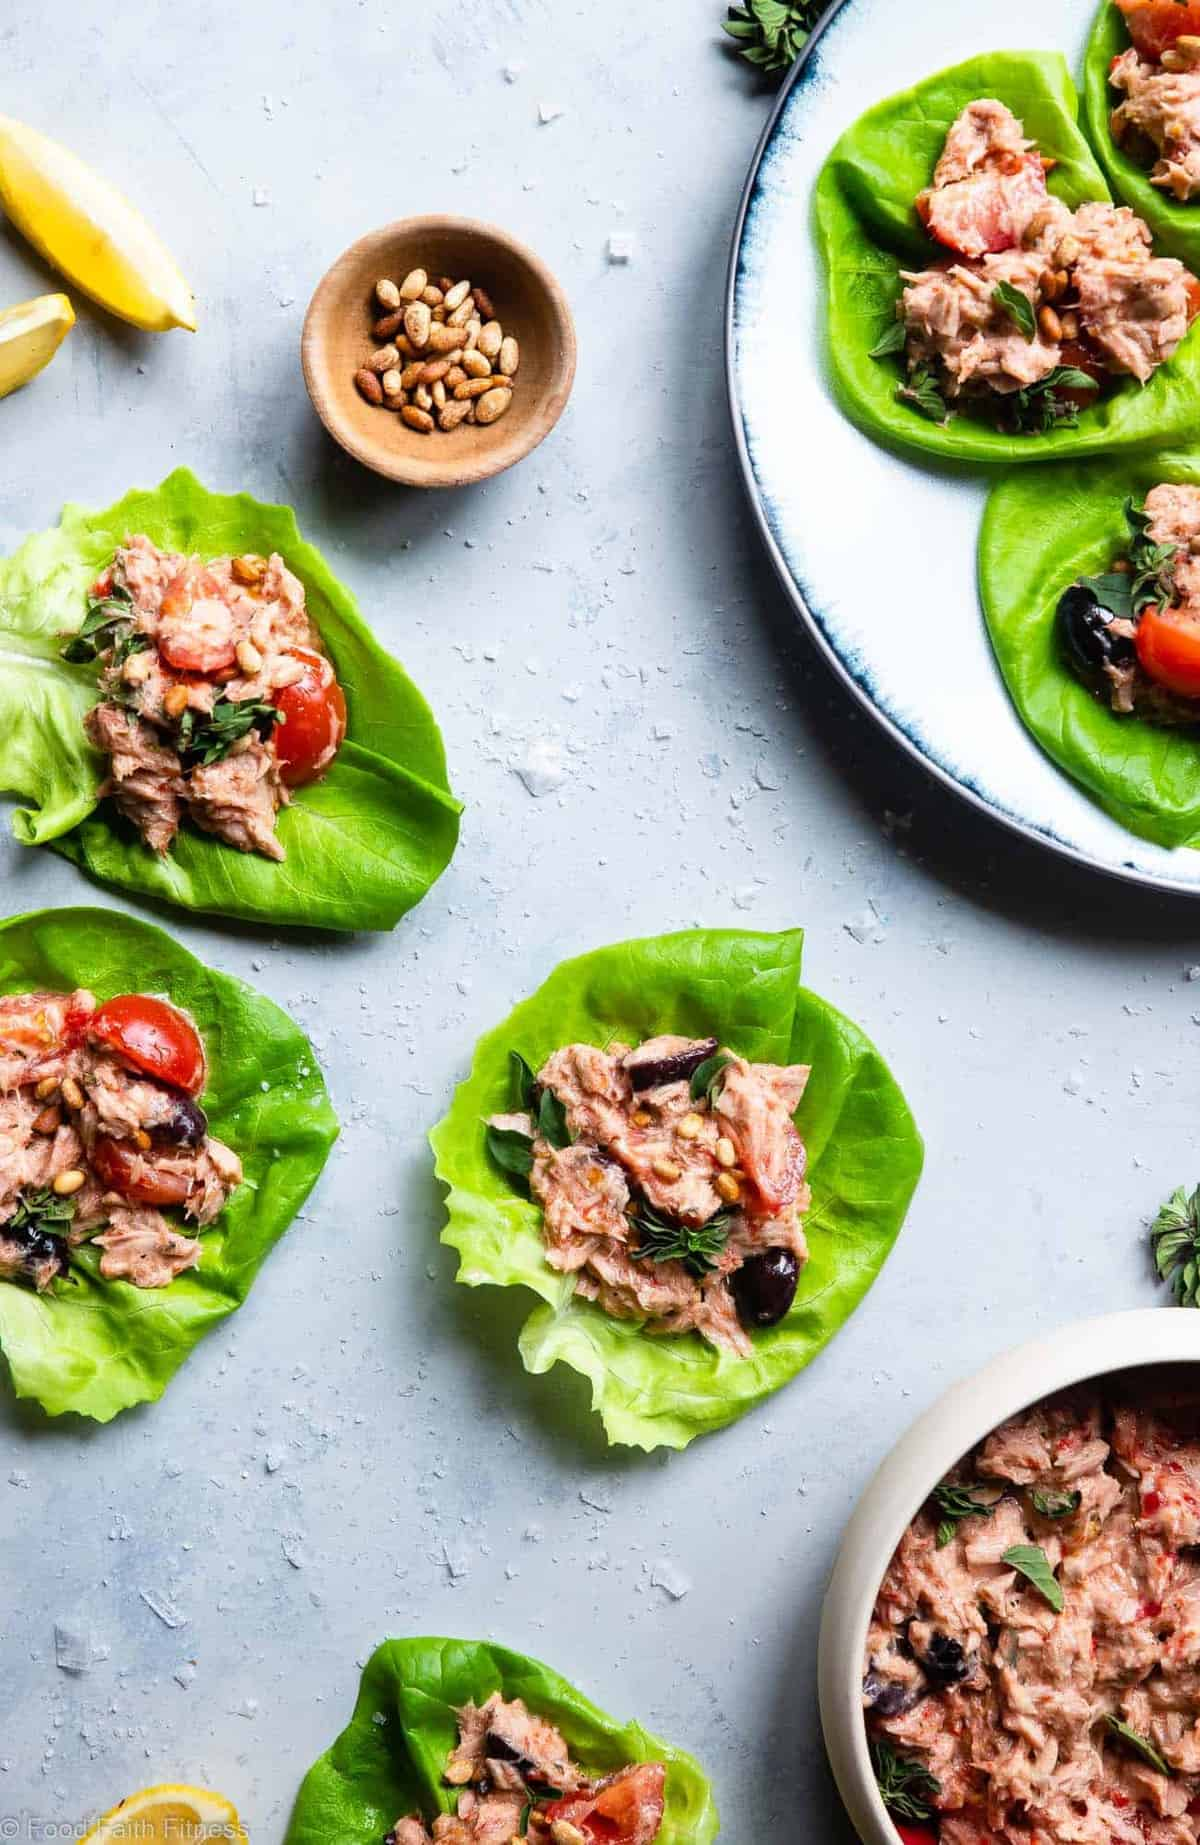 Paleo Mediterranean Tuna Salad with Olives -  This healthy tuna salad recipe is a quick and easy recipe that is great for meal prep and lunches! Gluten free, low carb, keto and whole30! | #Foodfaithfitness |